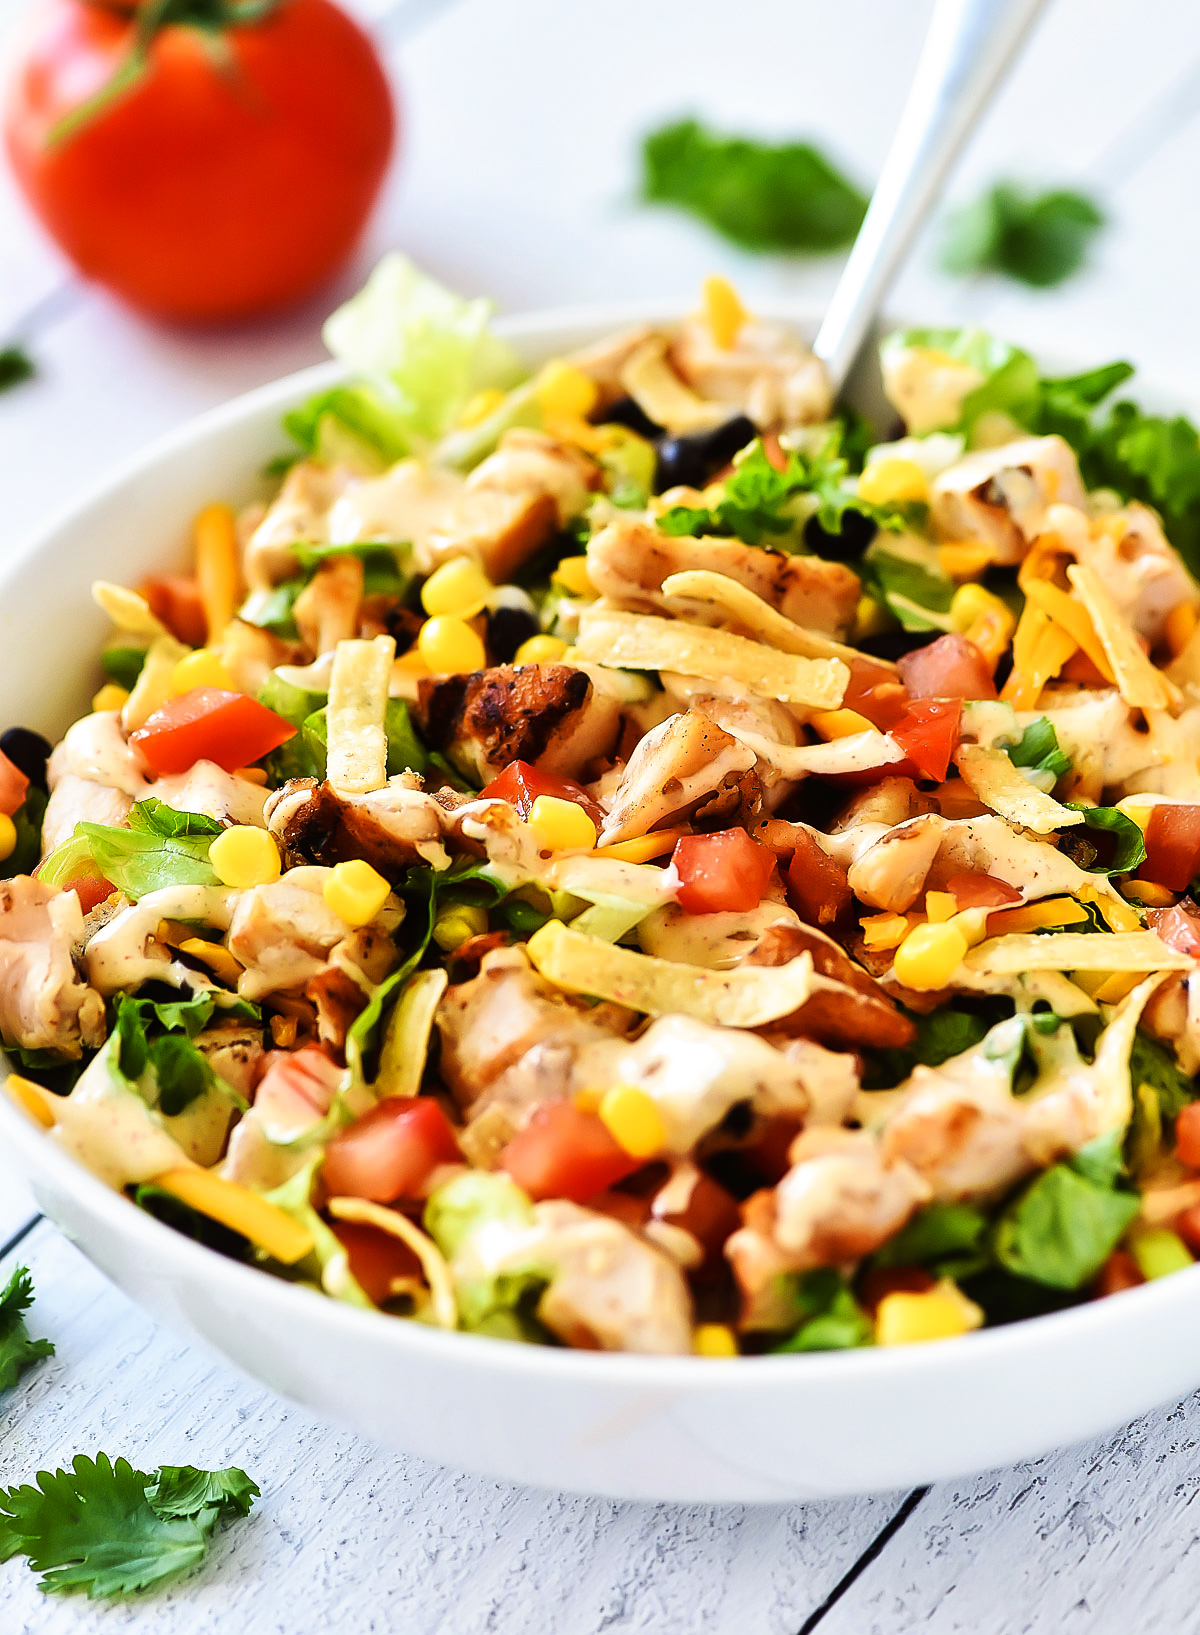 ex-Mex Chicken Chopped Salad is filled with crunchy romaine lettuce, corn, black beans, grilled chicken and more.